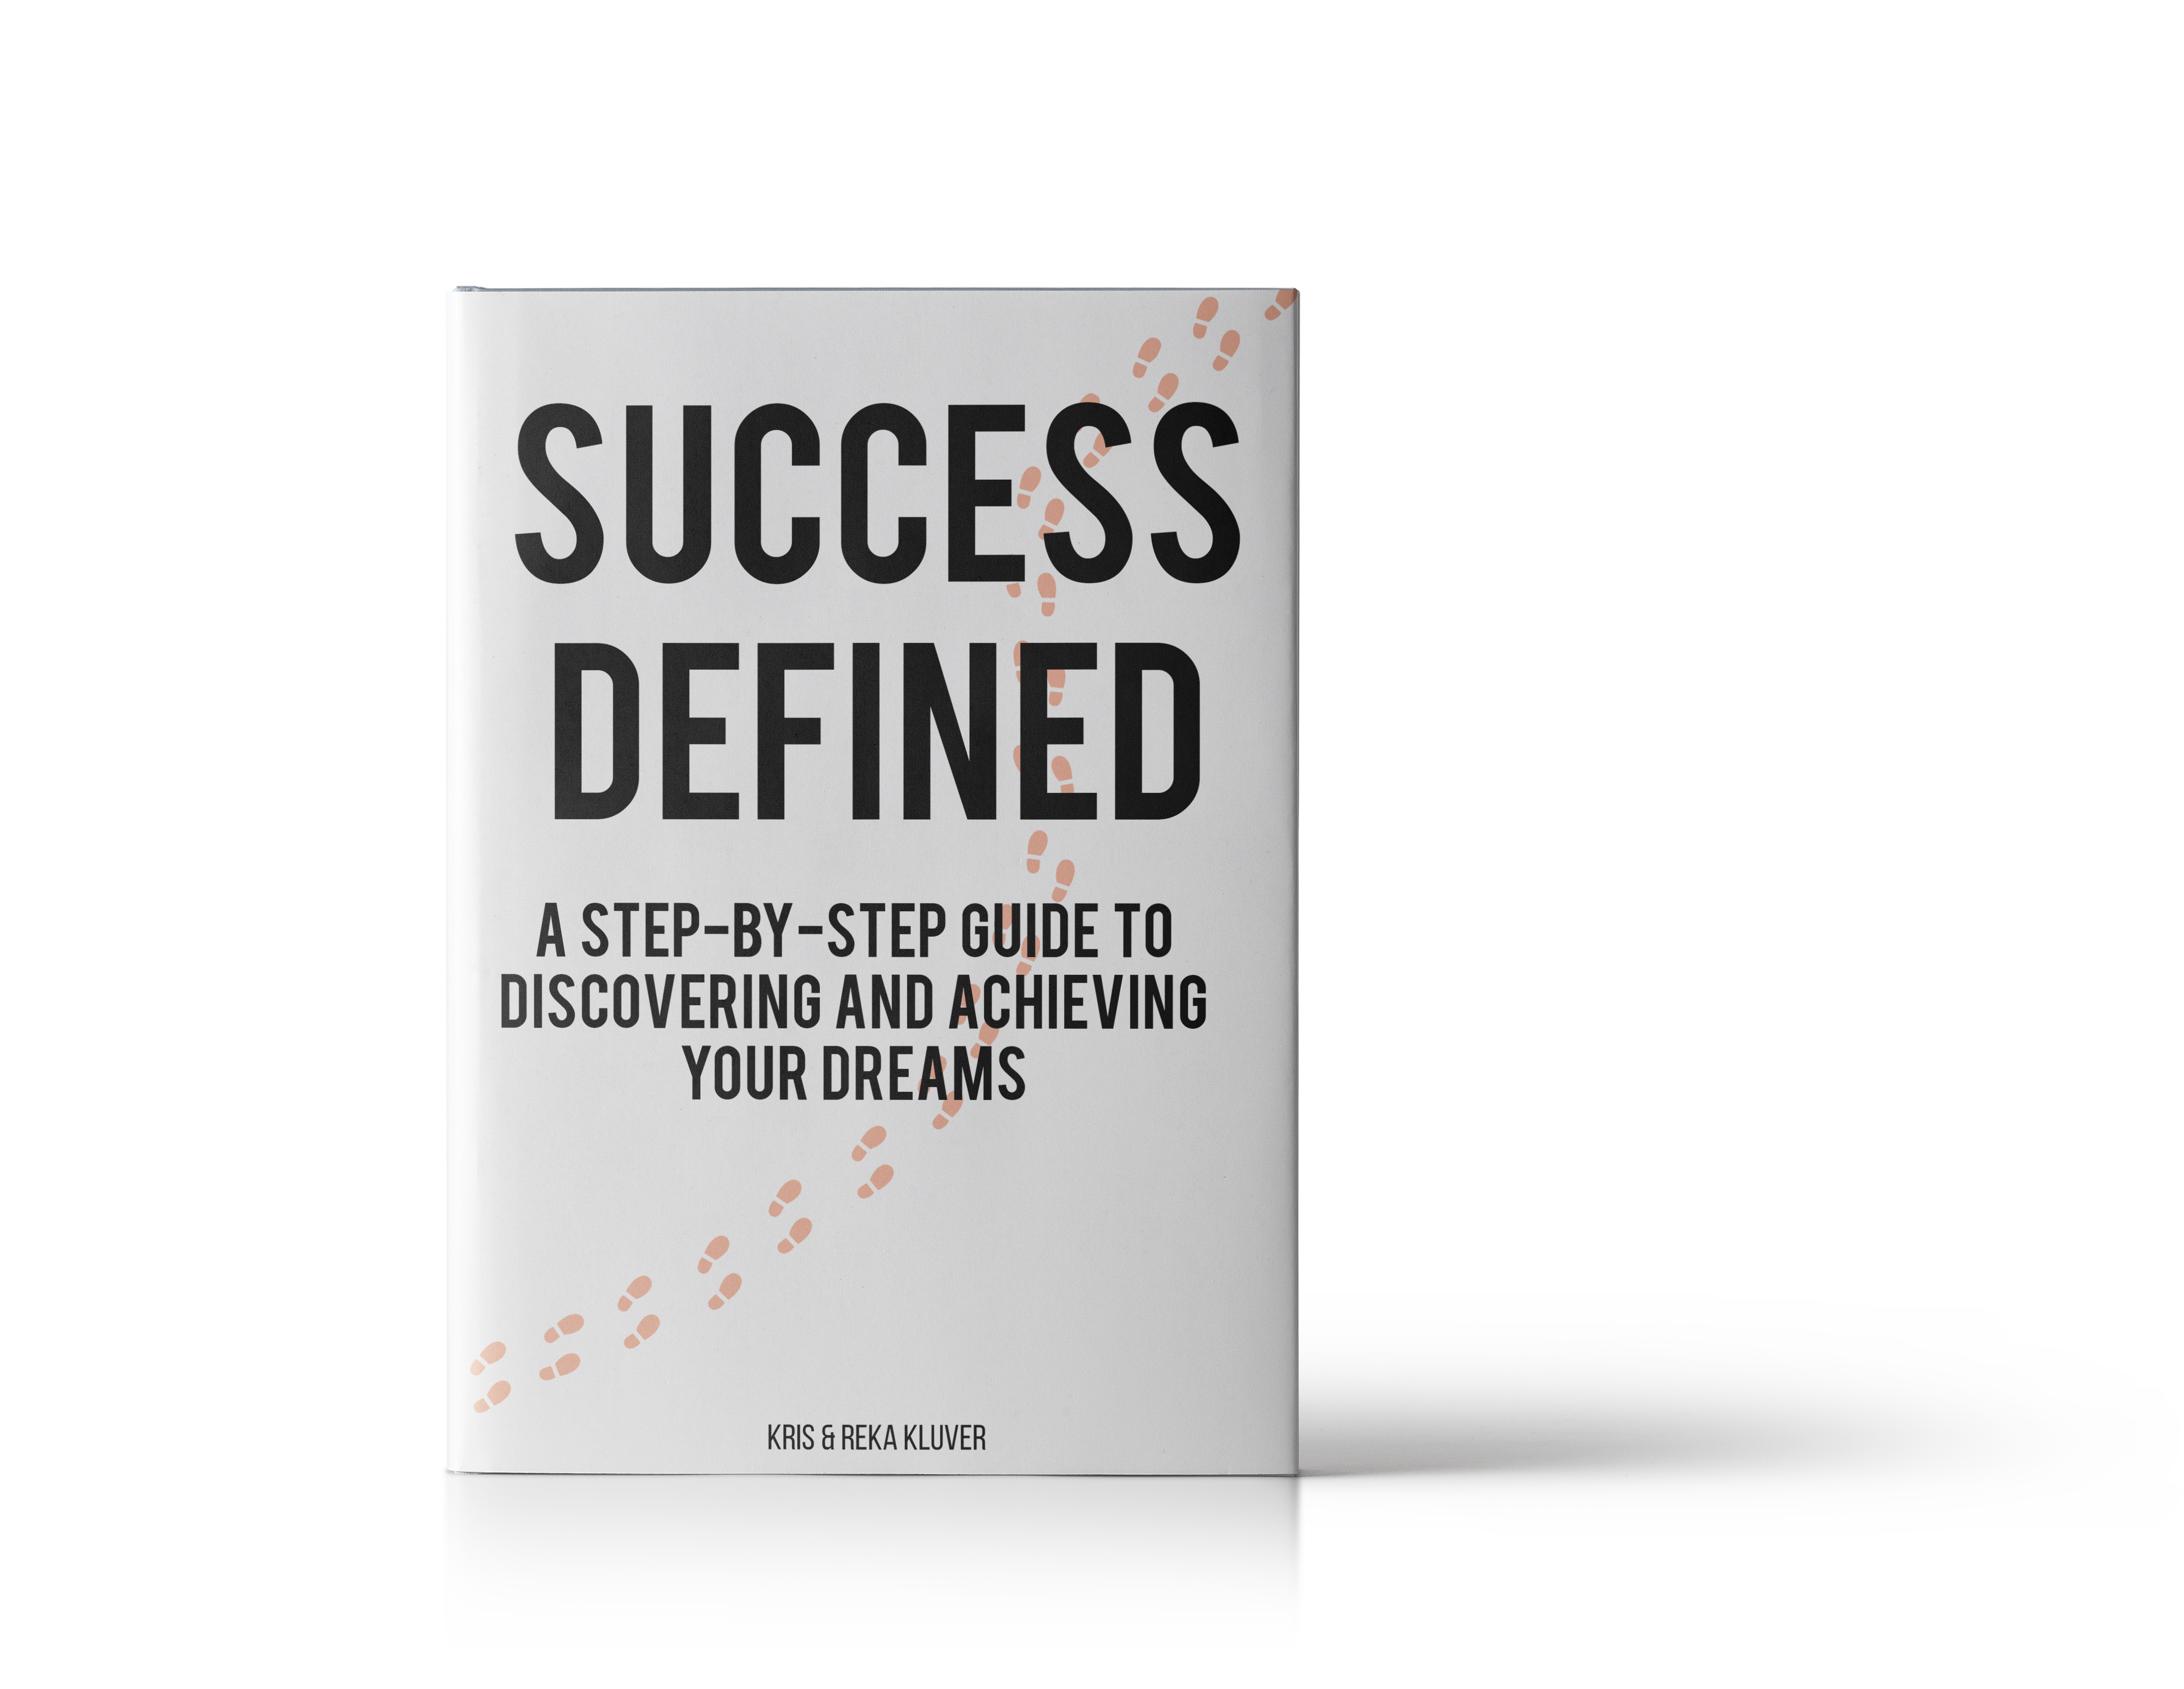 Ddefinition of success png. Defined a step by